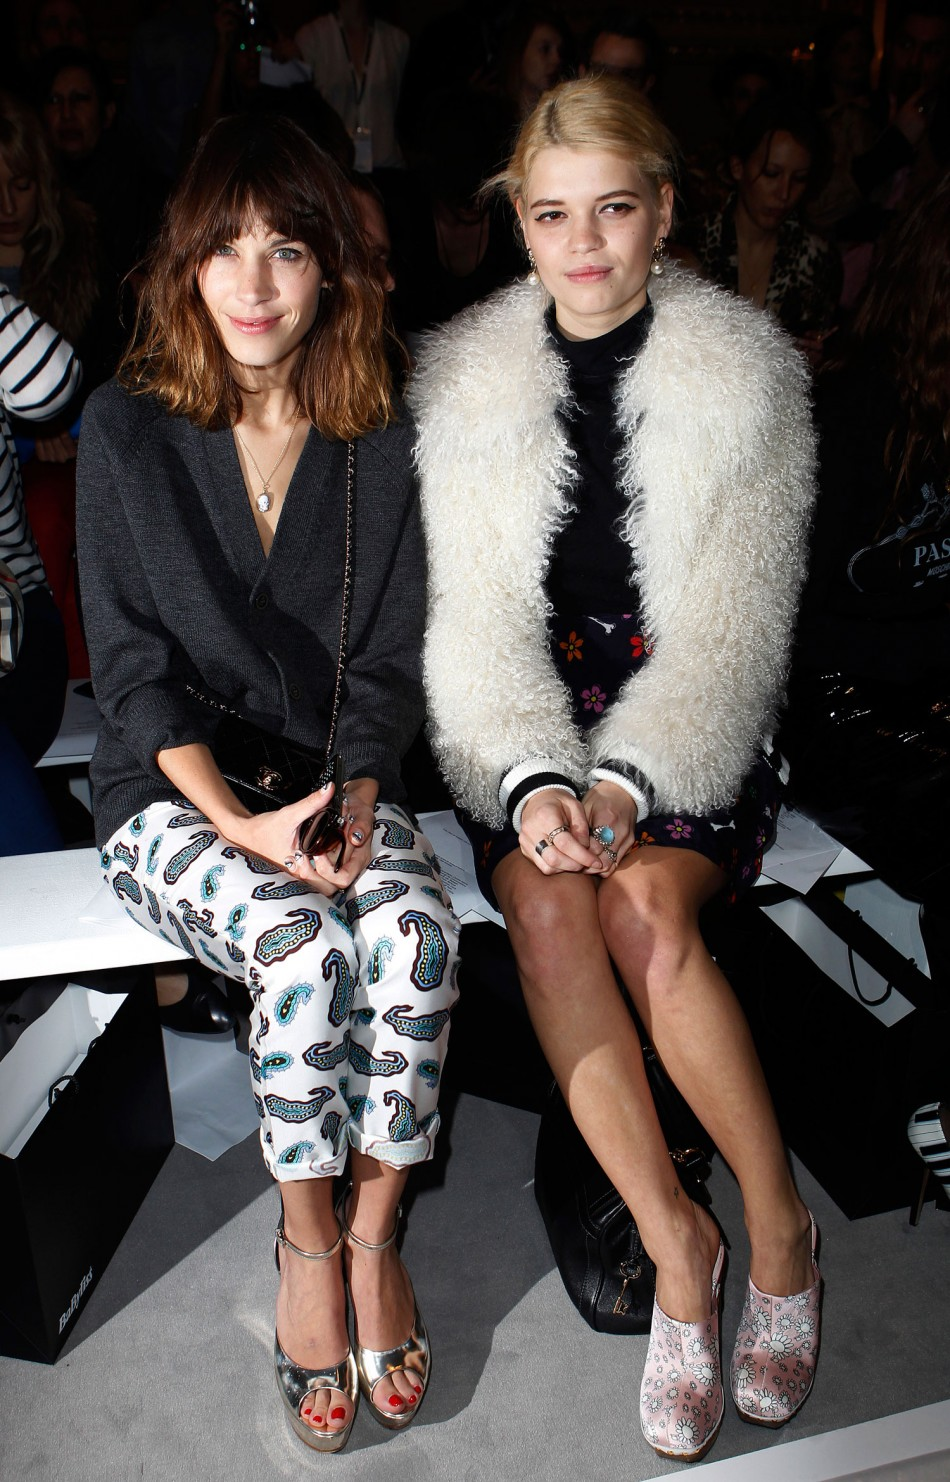 London Fashion Week 2012 Front Rows and Celebrities